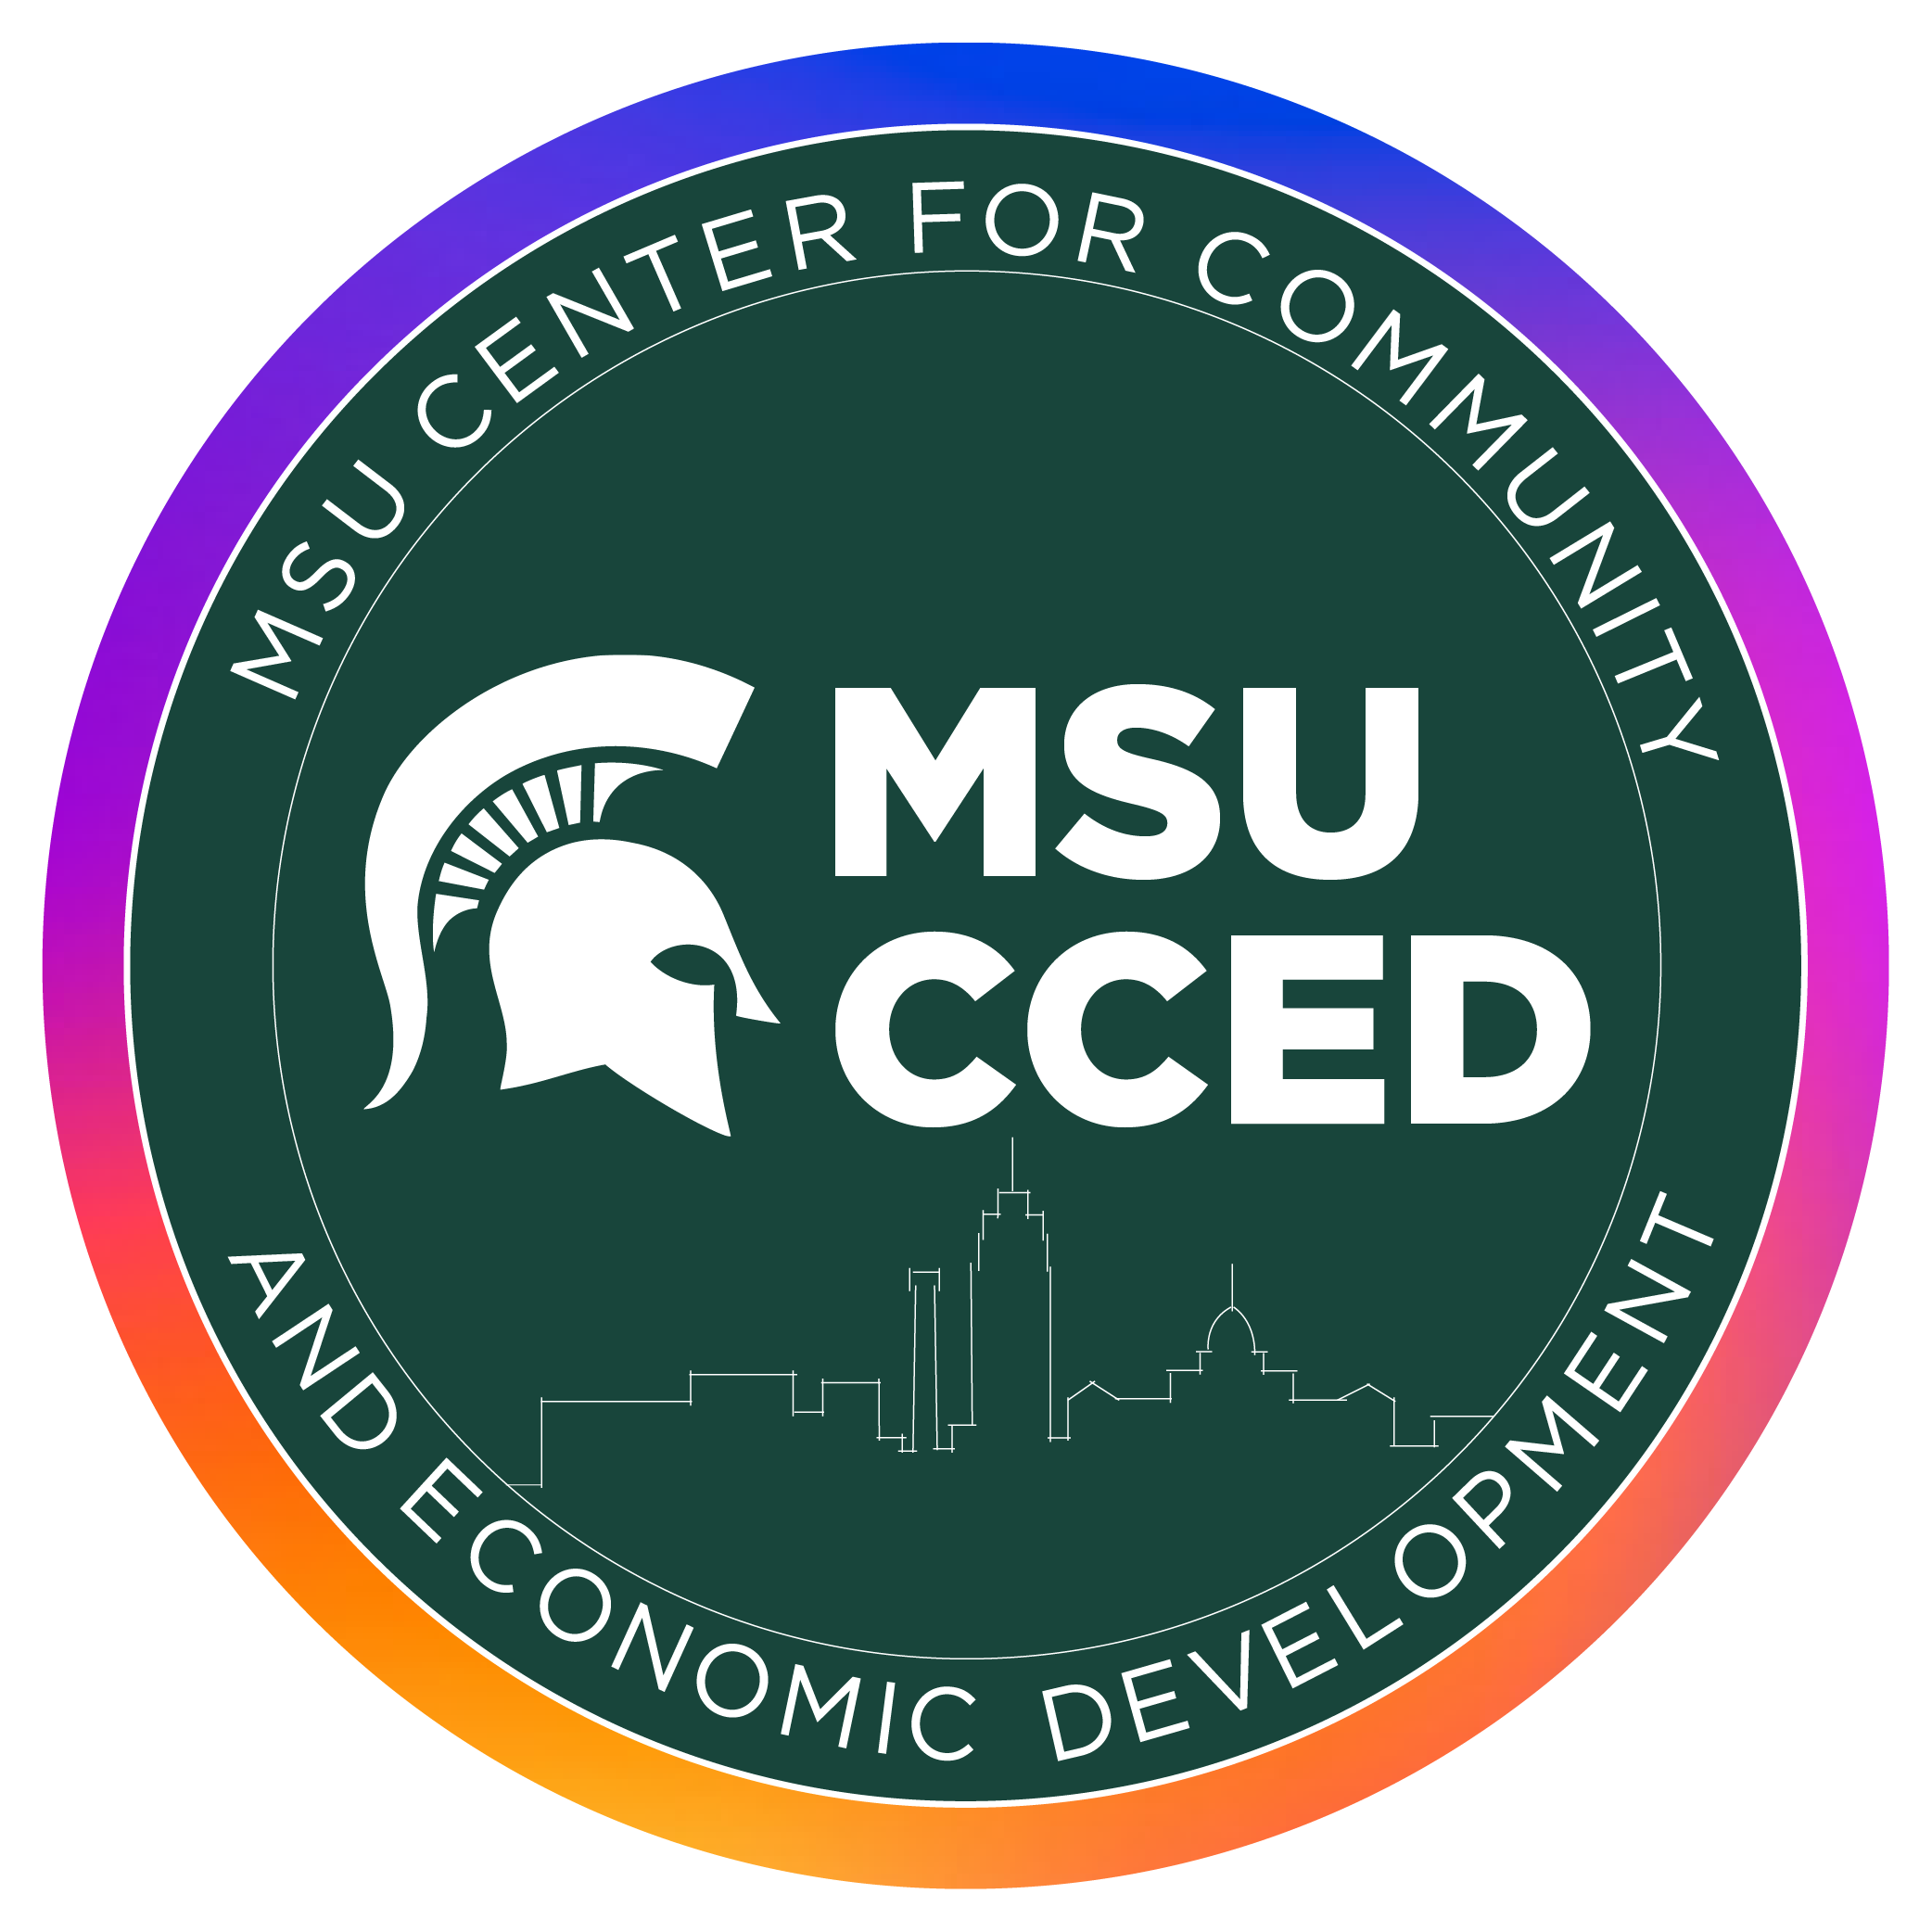 Center for Community and Economic Development Logo